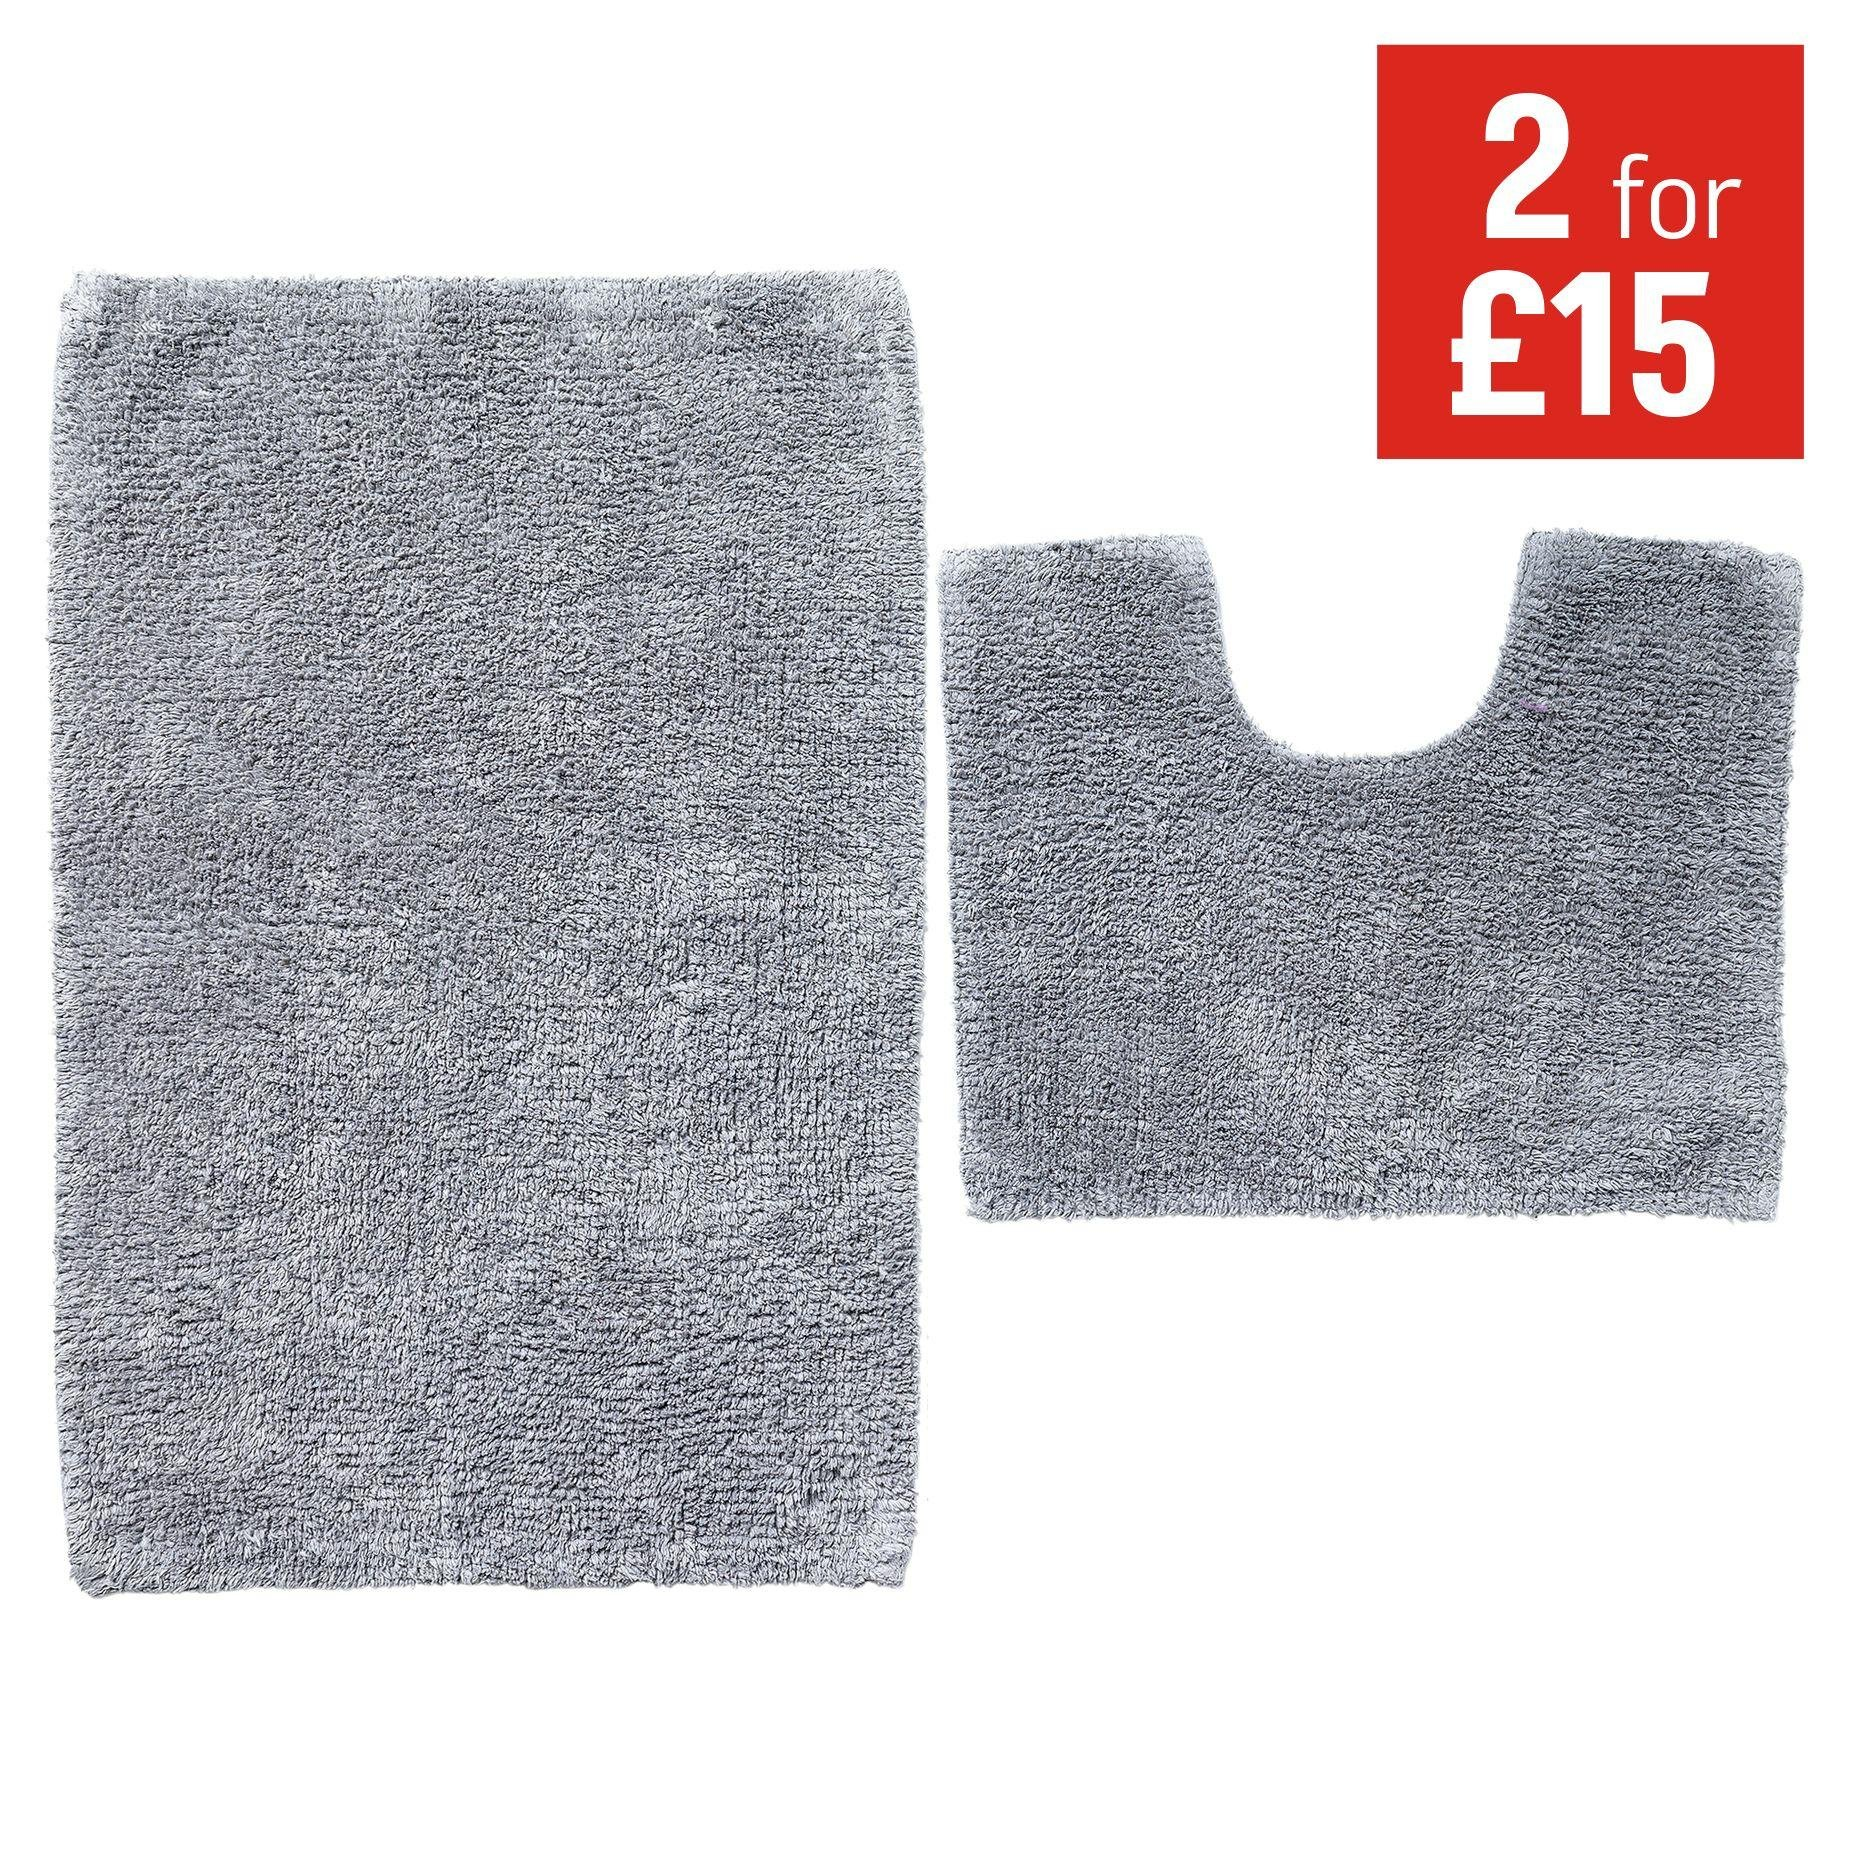 Argos Sale Save Up To 92 On Argos Clearance Items